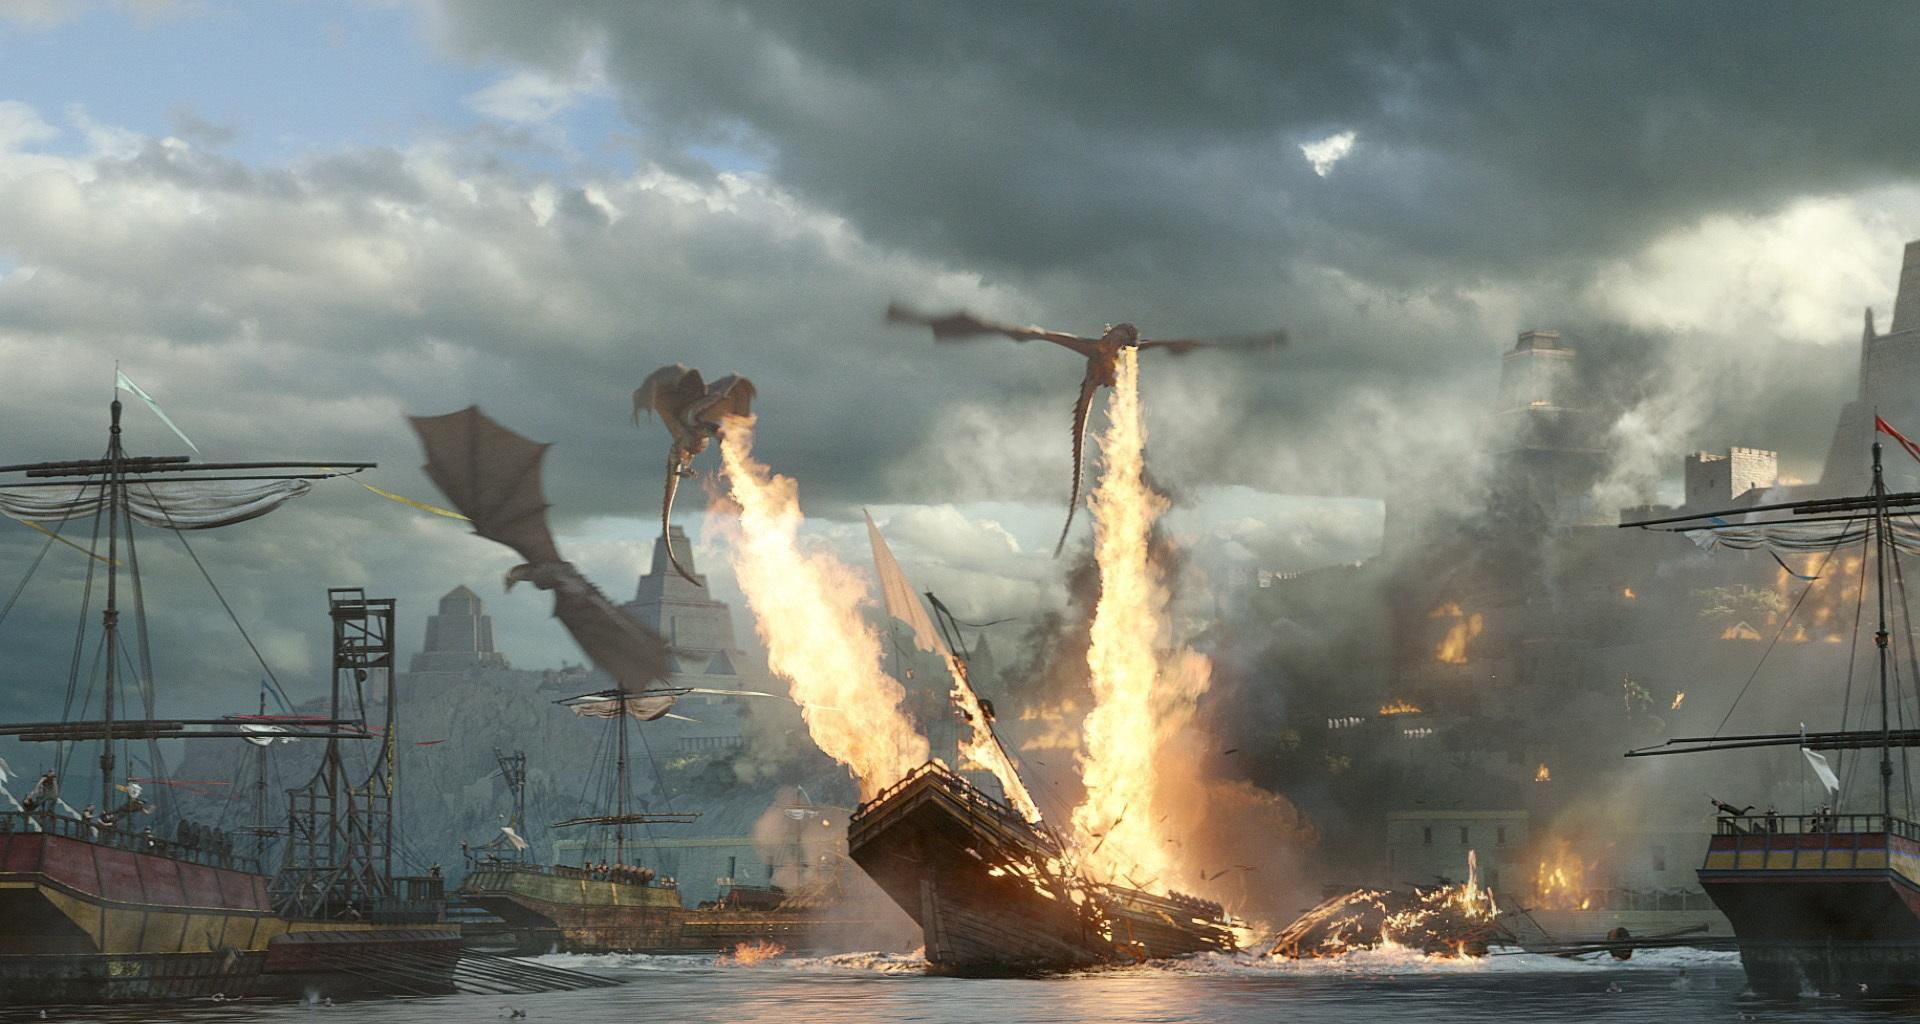 Game of Thrones season 7 breaks record for most people set on fire in a film or TV show